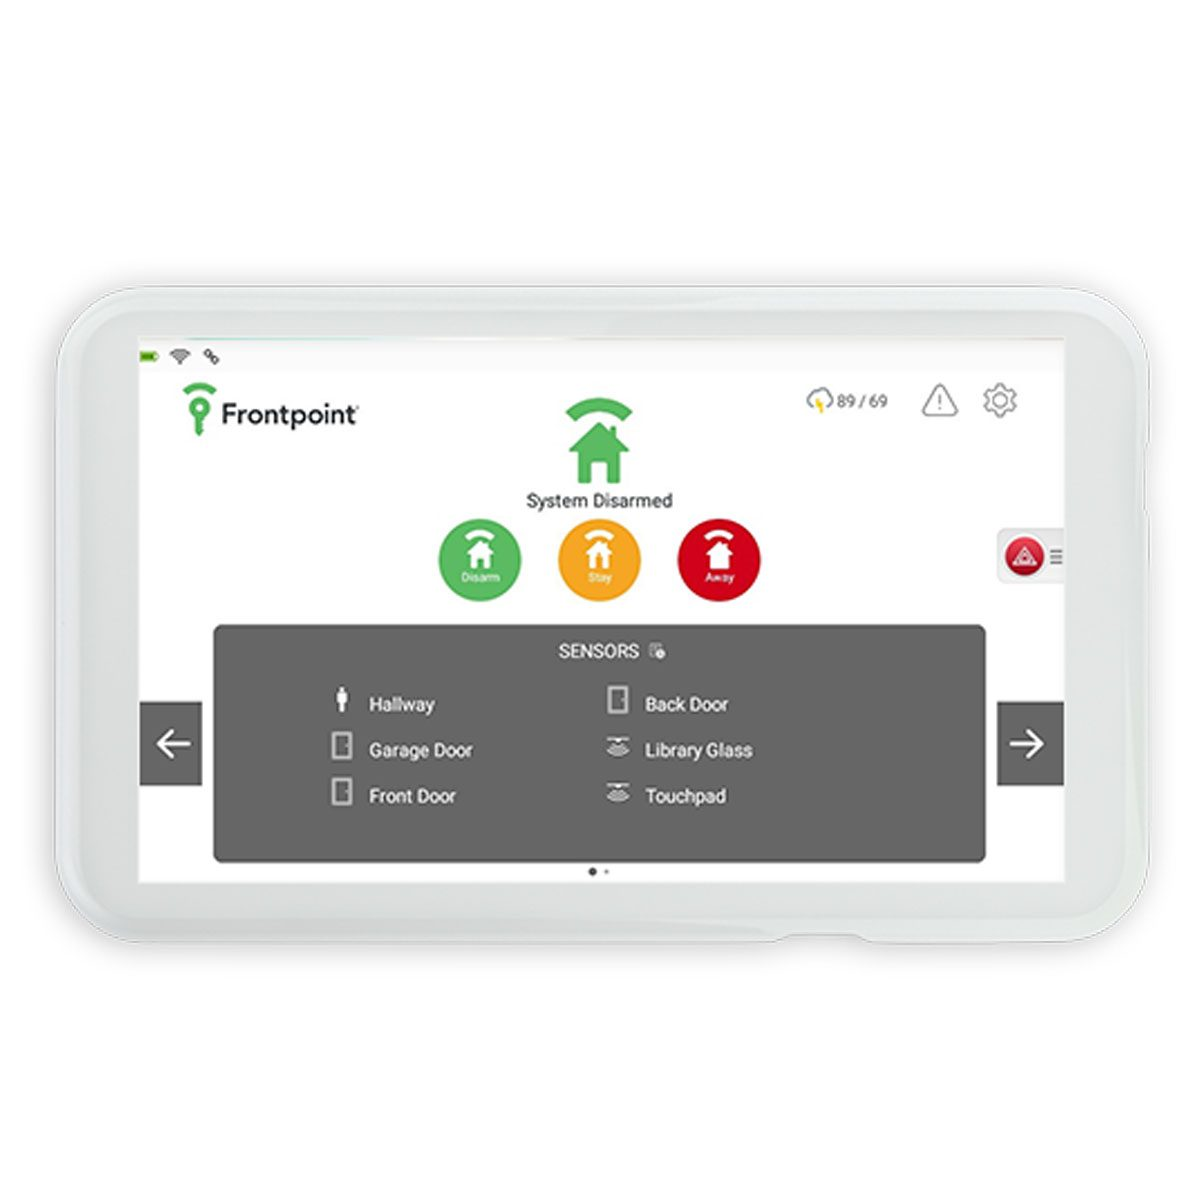 Frontpoint Security panel Touchscreen Product Image 1200x1200 1